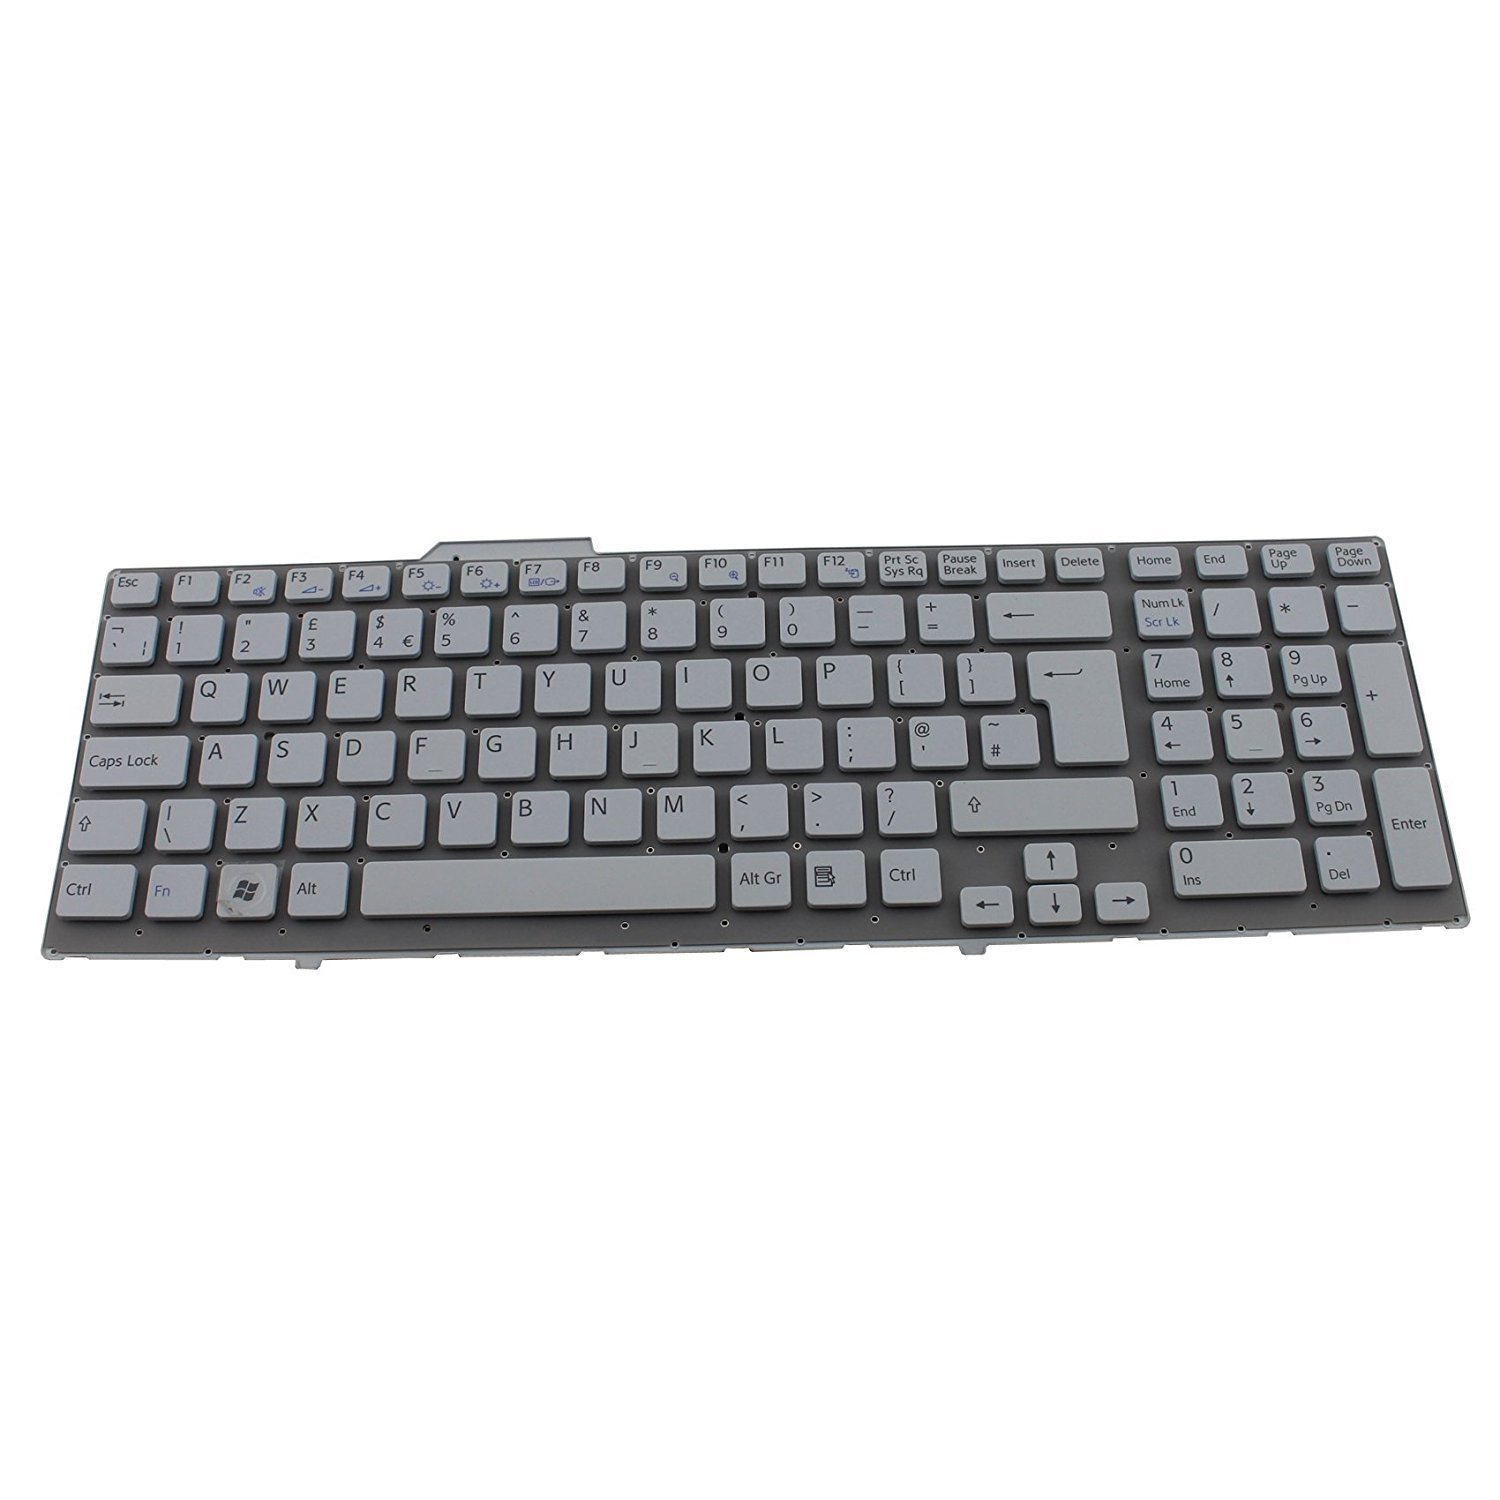 Sony Vaio VPCF136FX Remote Keyboard Windows Vista 32-BIT